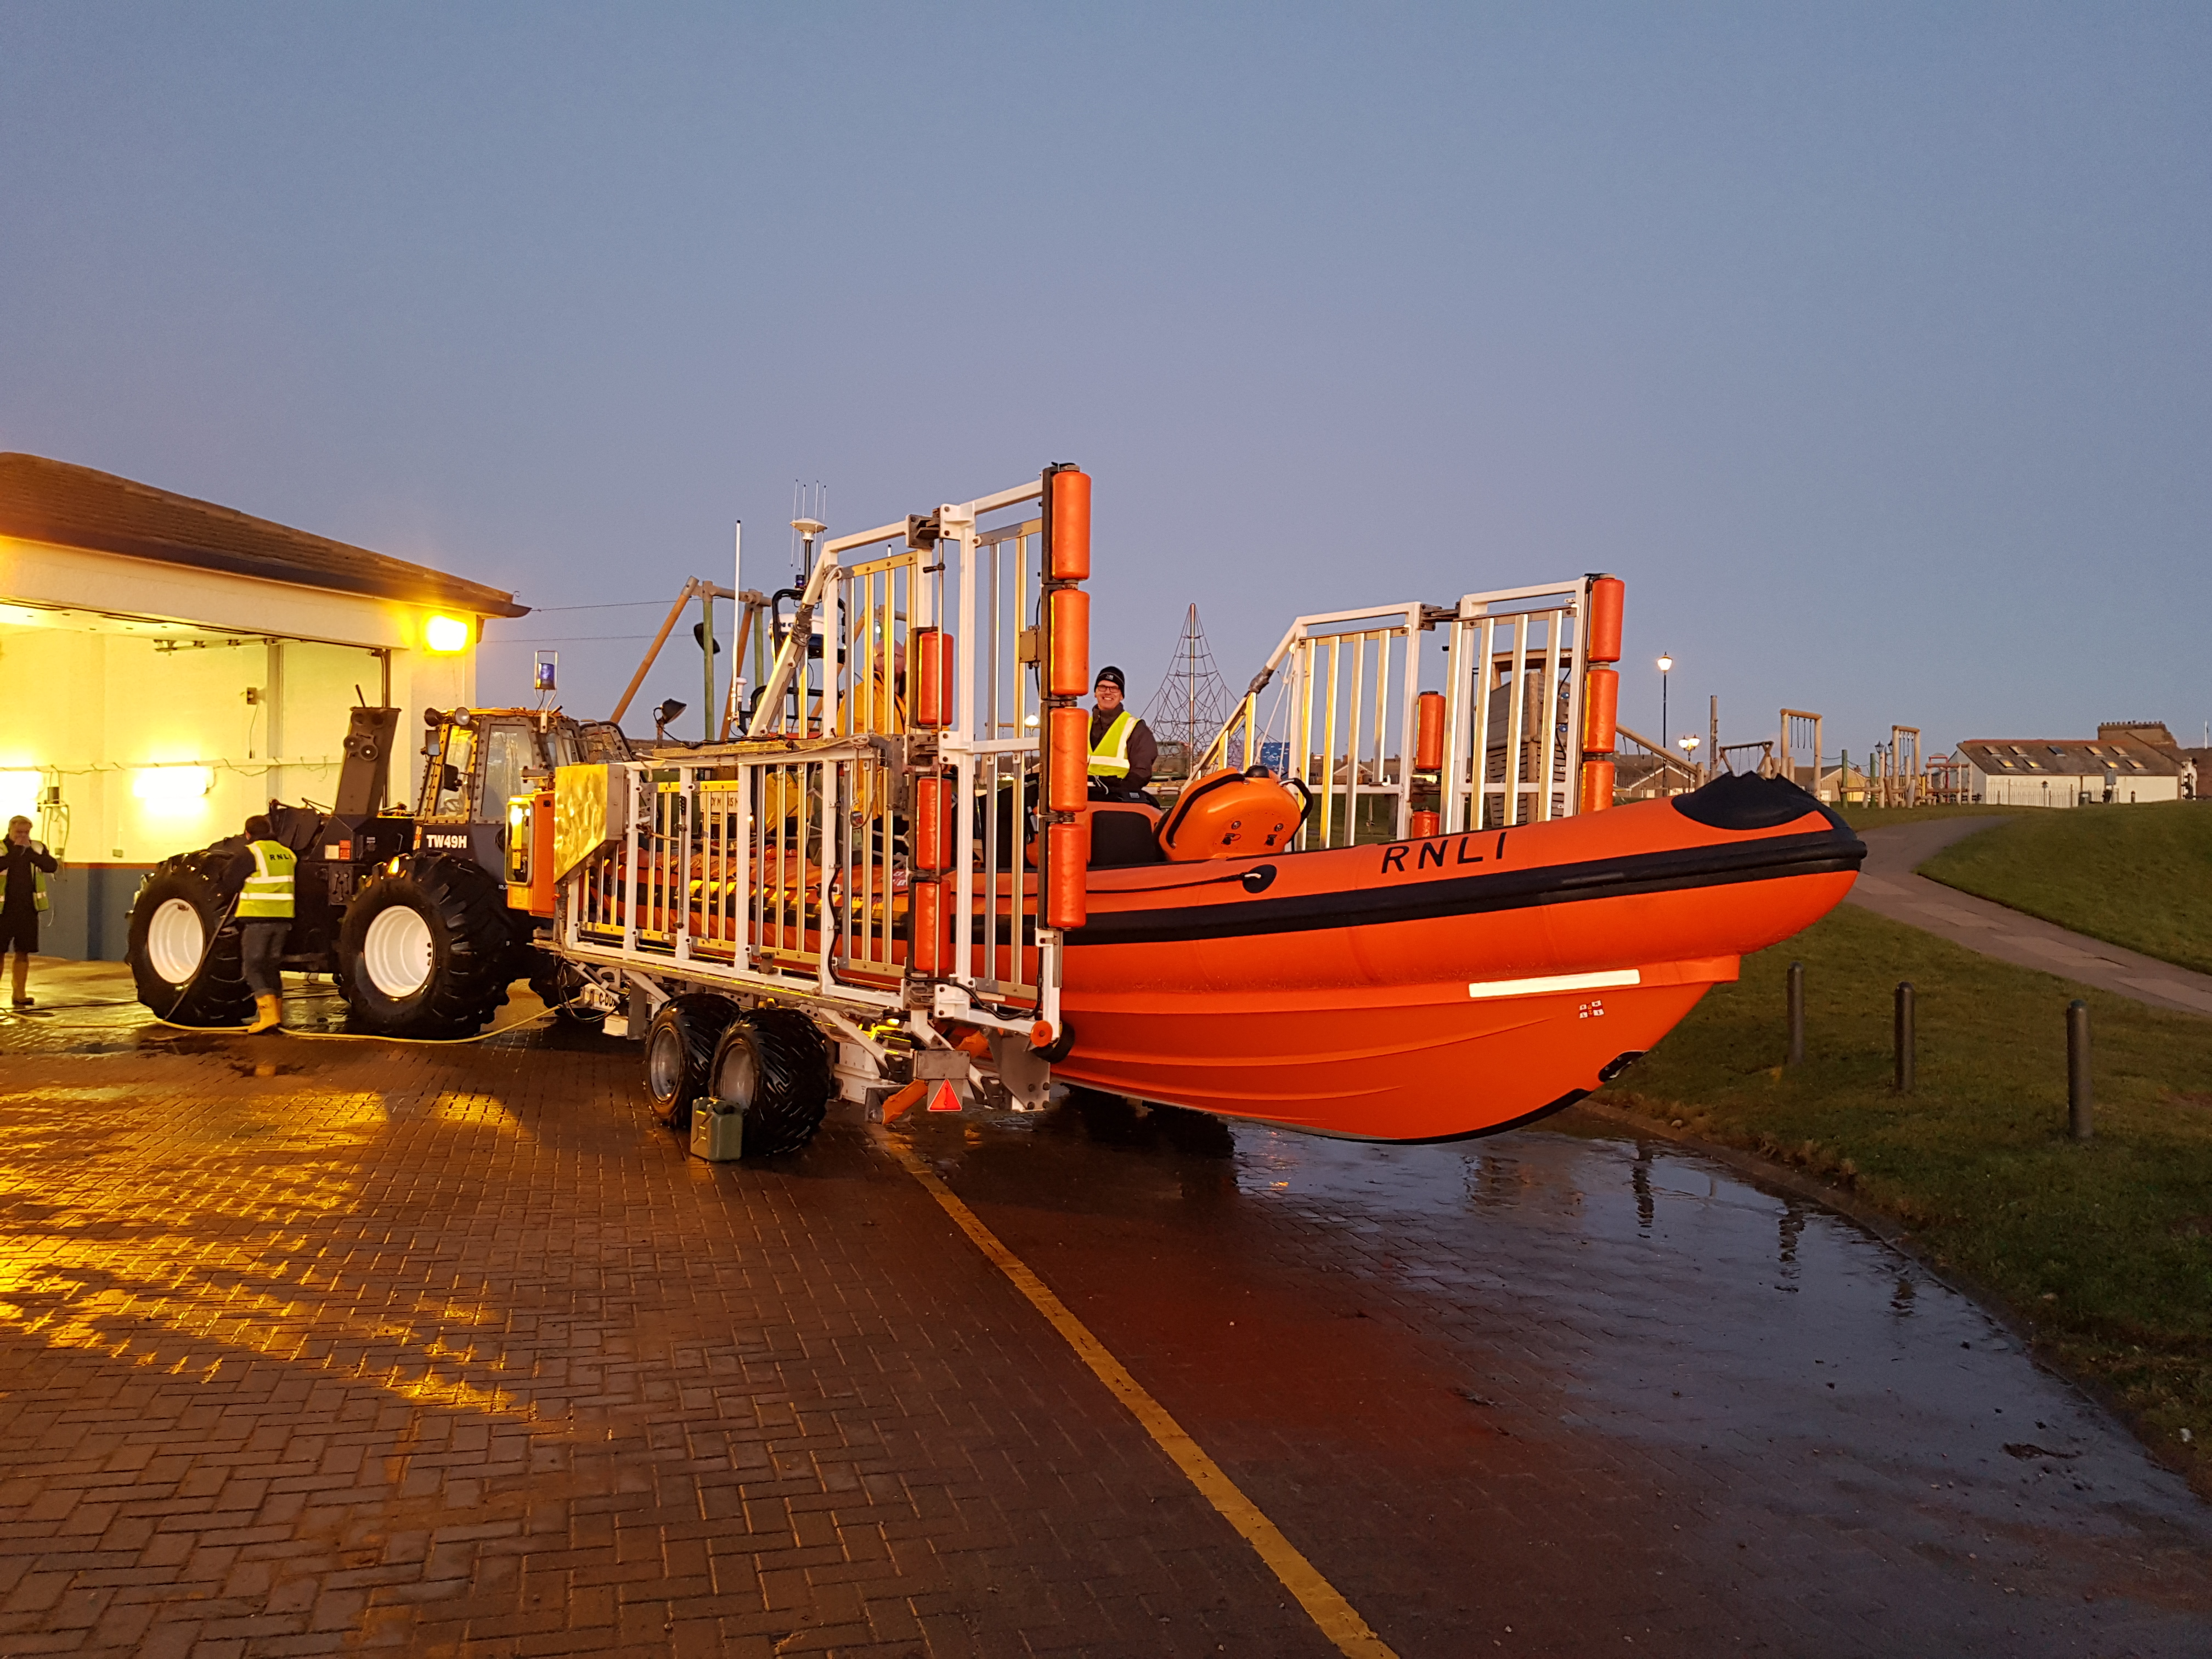 After a cold afternoon search around Whitehaven Harbour the lifeboat is returned to the station and made ready for the next call out